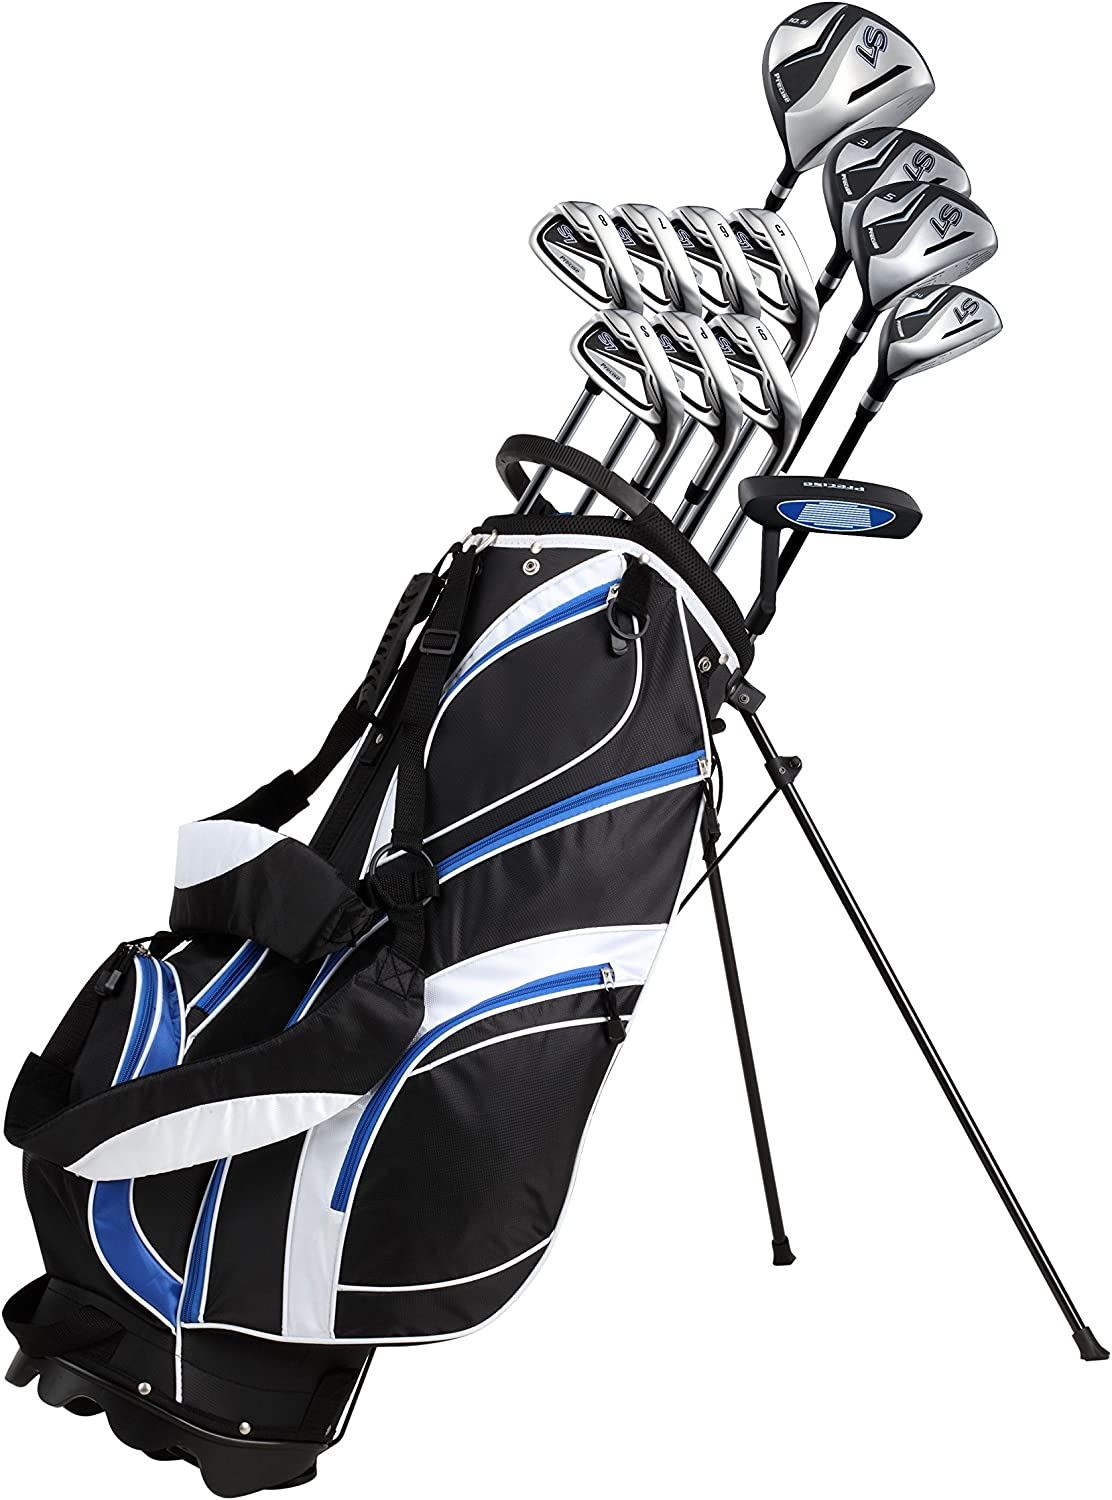 consumer reports best golf clubs